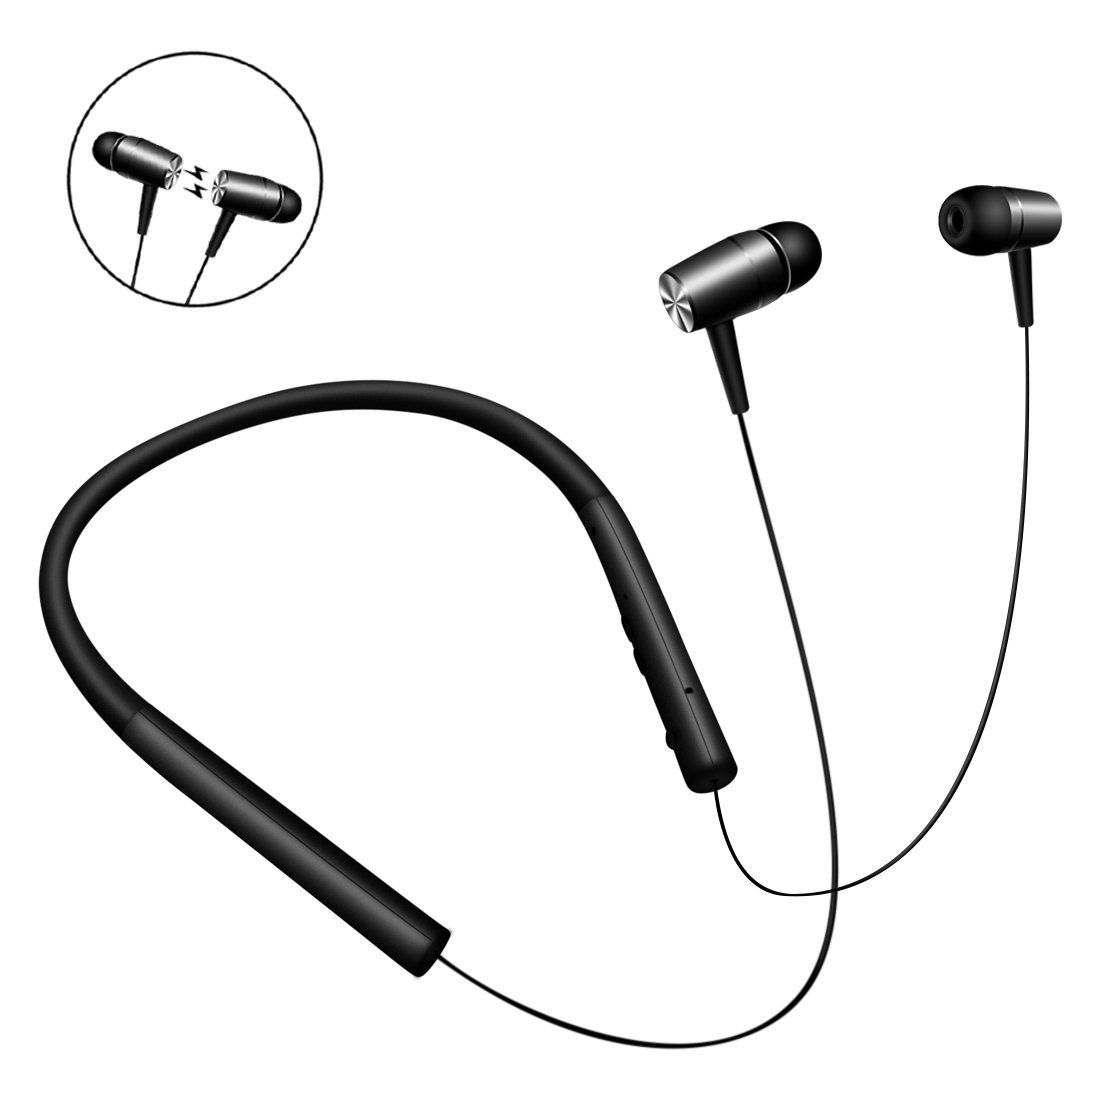 Kimitech V4.1 Bluetooth Headphones Wireless Wired Flexible Neckband ...